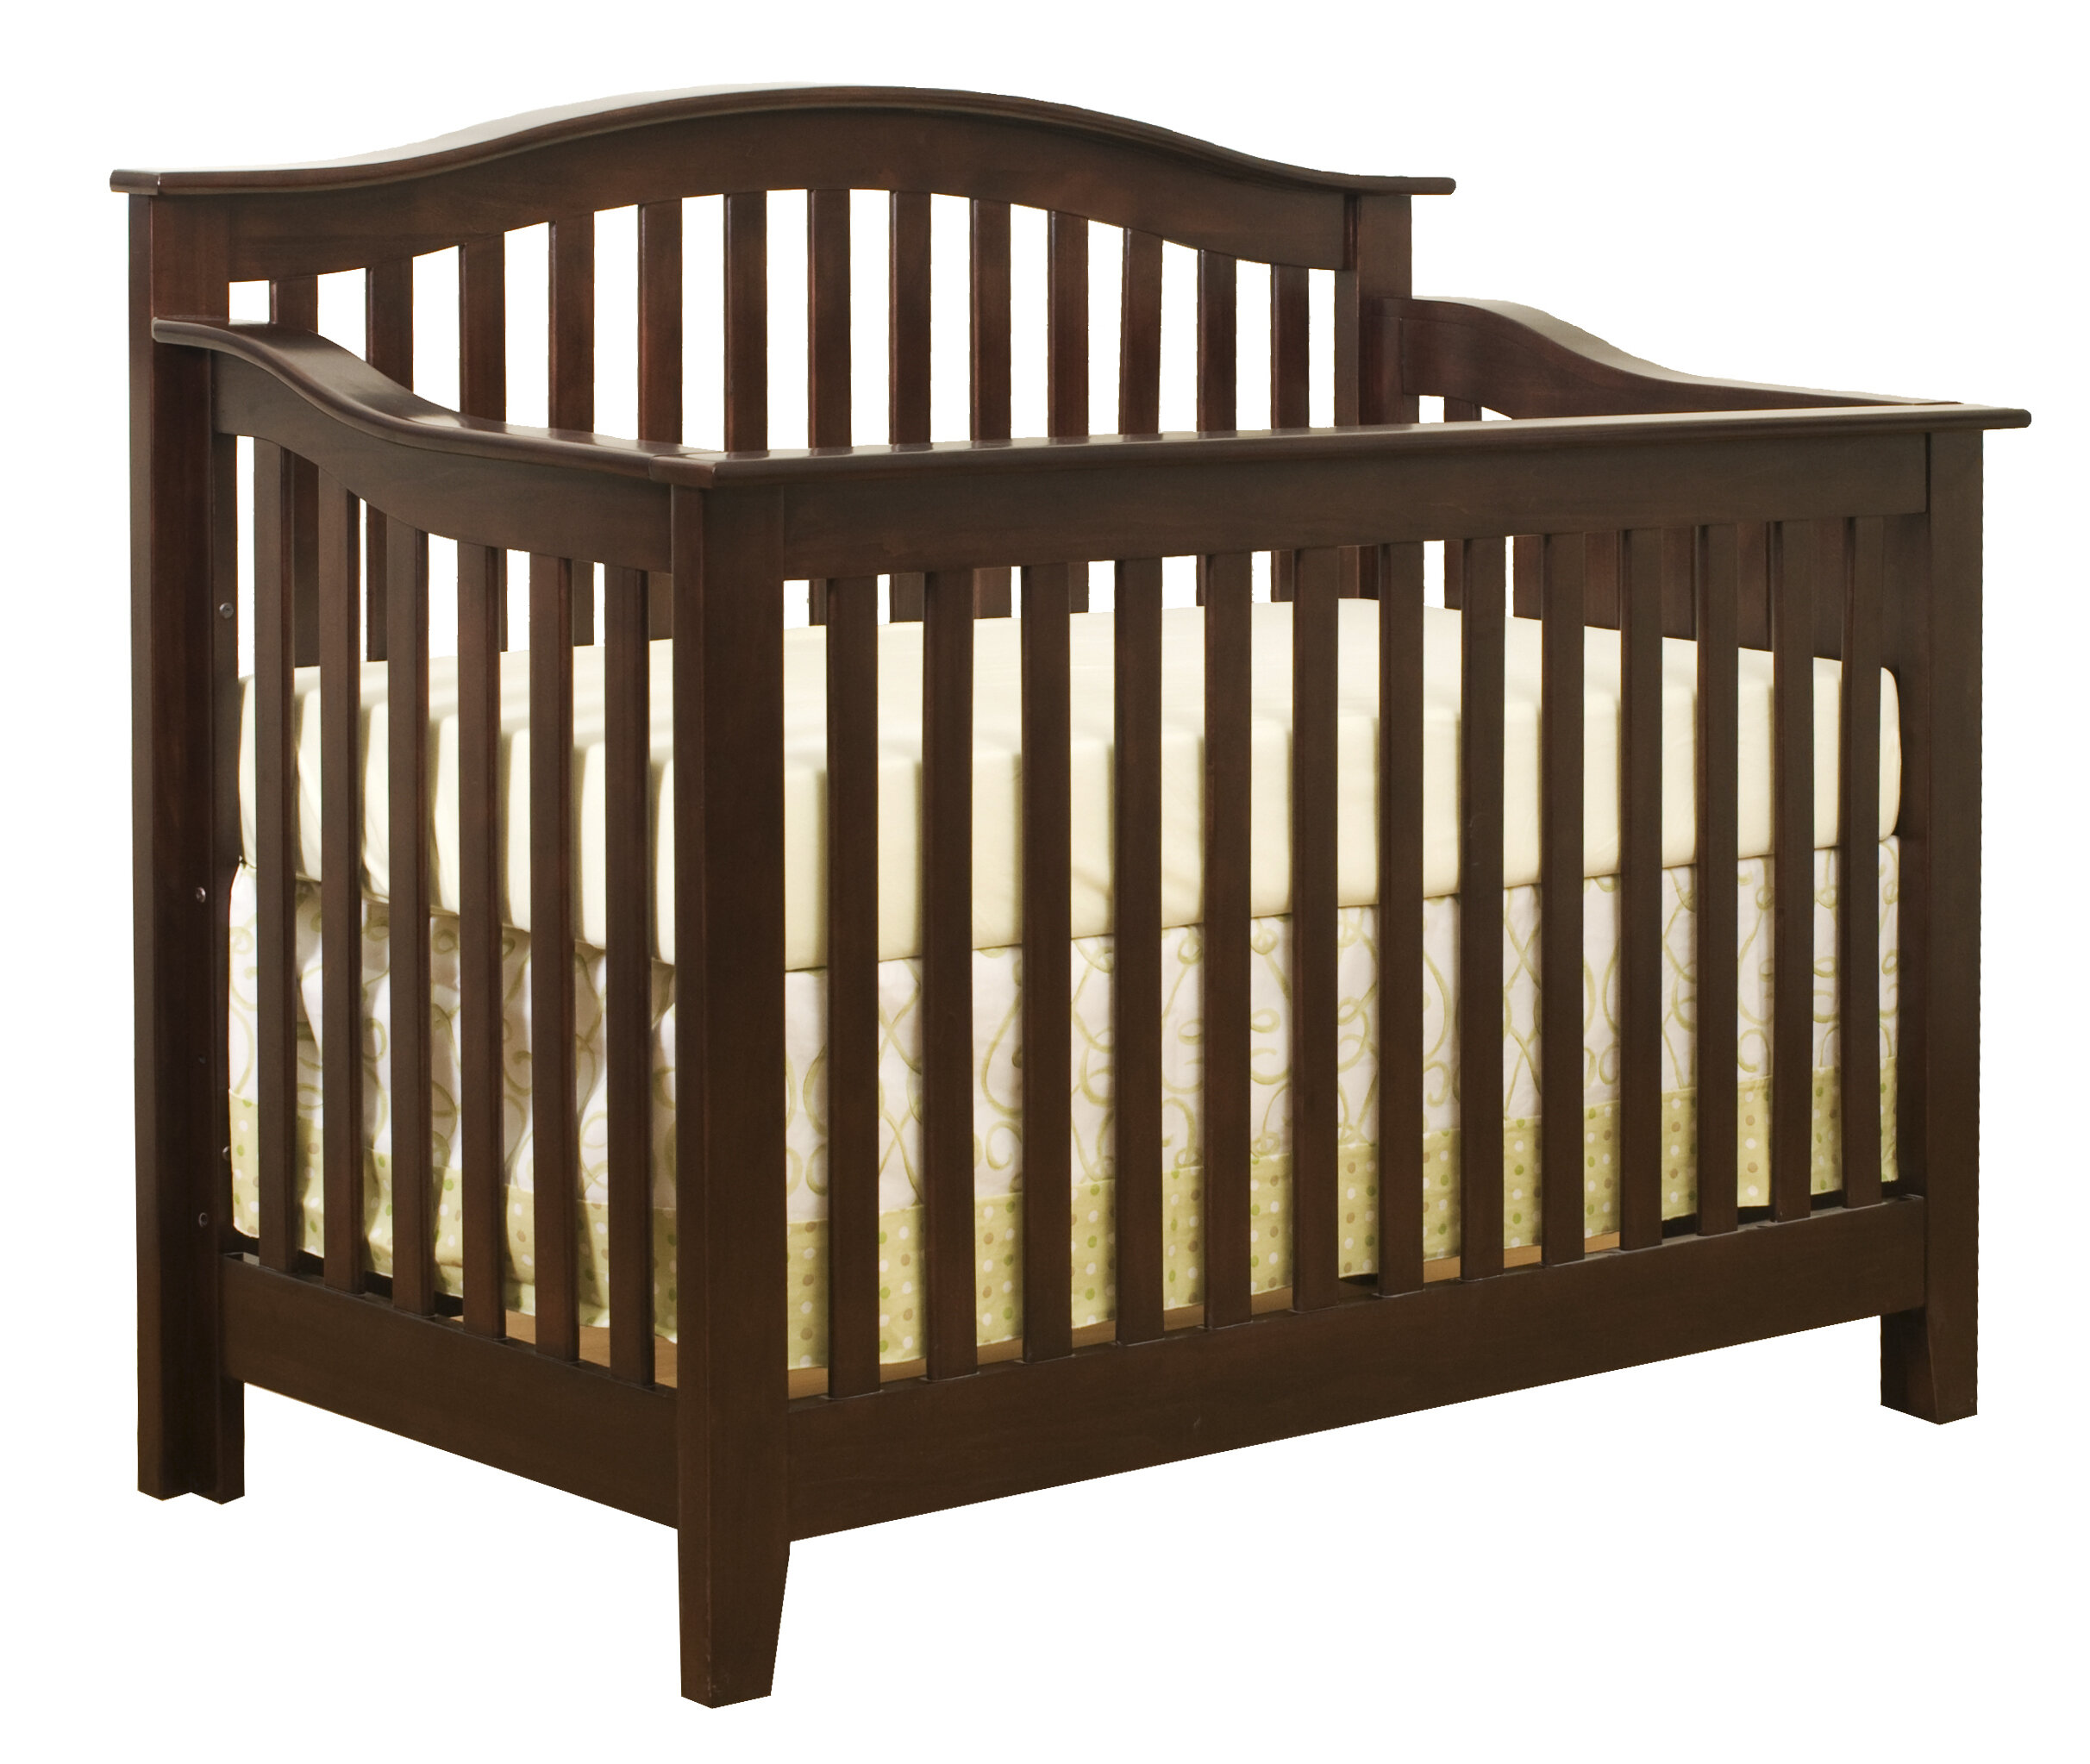 wood bedroom black conversion dark babys delta included twin cottage us baby dream headboard solid cribs drawer bed tuscany contemporary crib s convertible babies princess storage oak r breathtaking kit